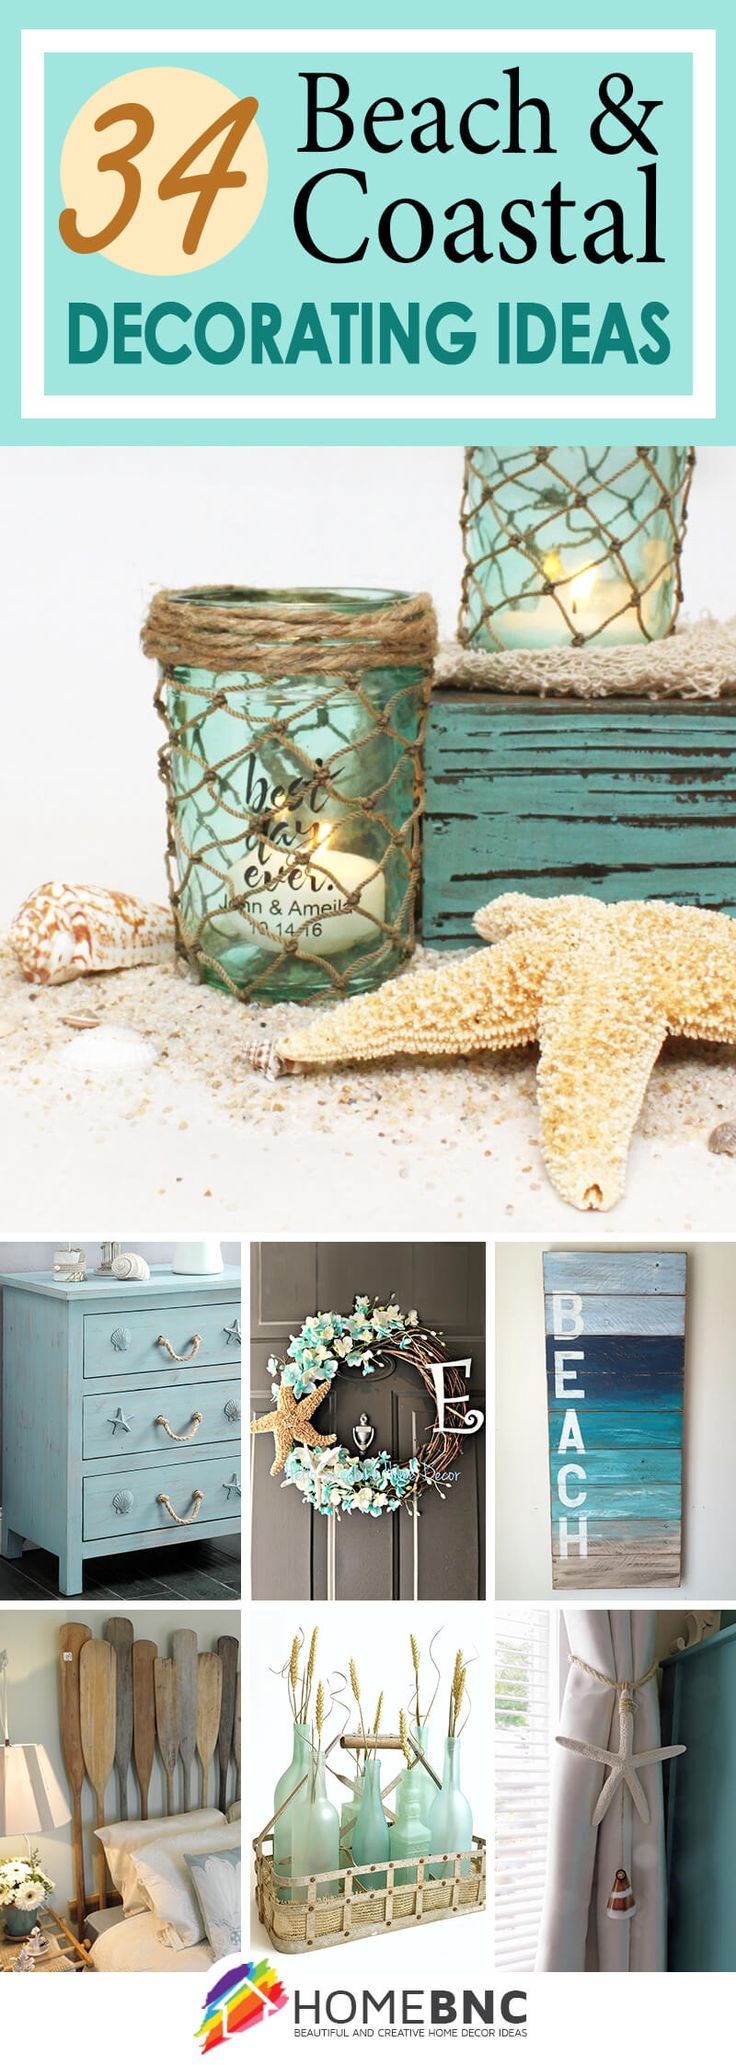 Bathroom Ideas Beach best 25+ coastal decor ideas only on pinterest | beach house decor